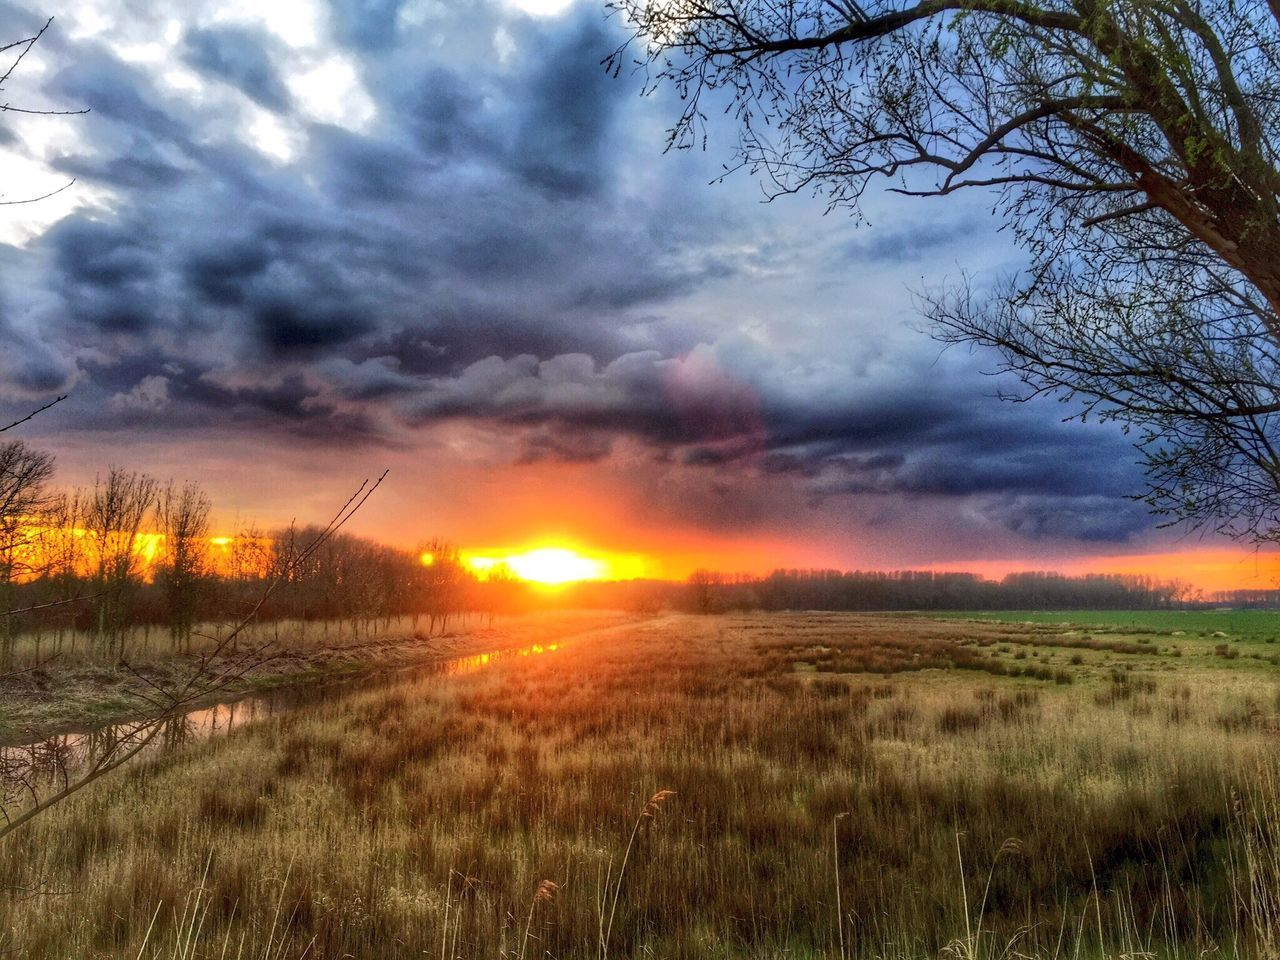 sunset, field, sky, grass, nature, tranquil scene, orange color, beauty in nature, scenics, tranquility, cloud - sky, landscape, sun, growth, no people, outdoors, tree, plant, rural scene, day